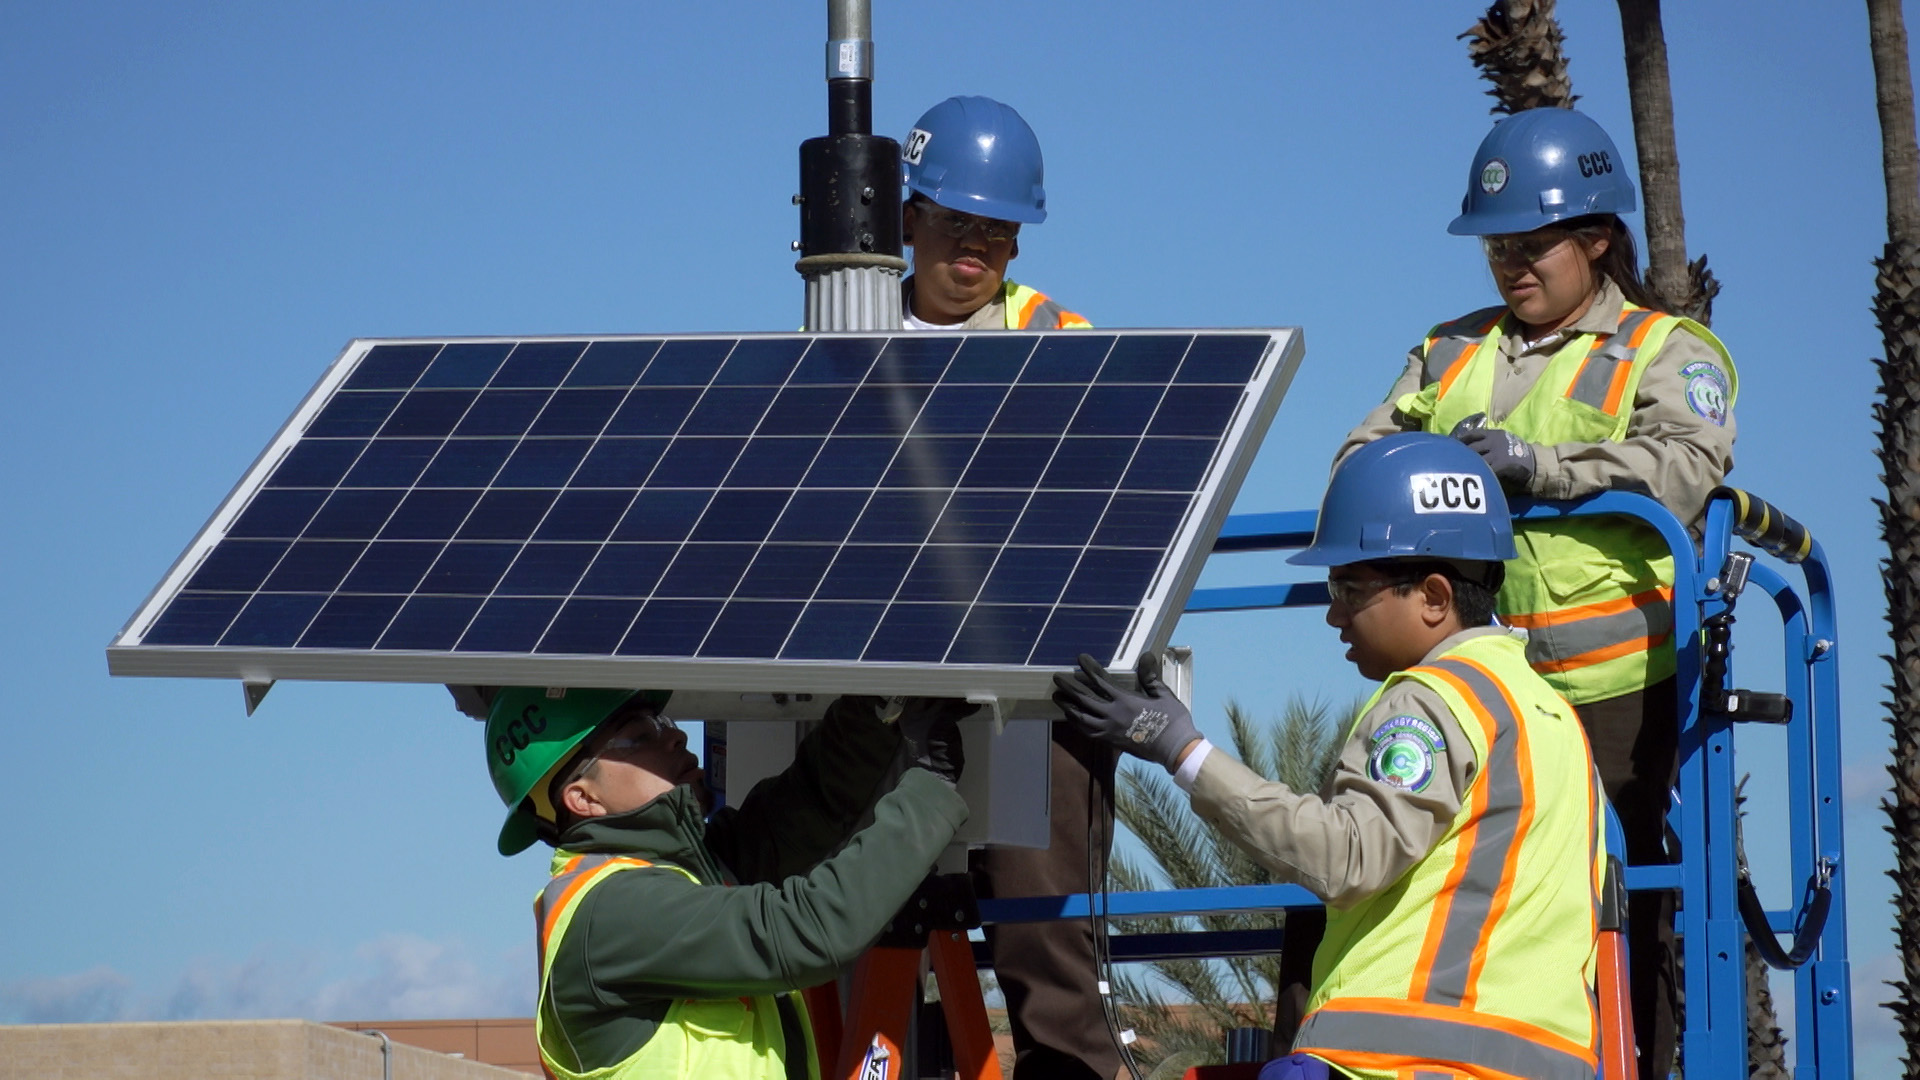 Image. Corpsmembers in protective gear afix a solar panel to a street light